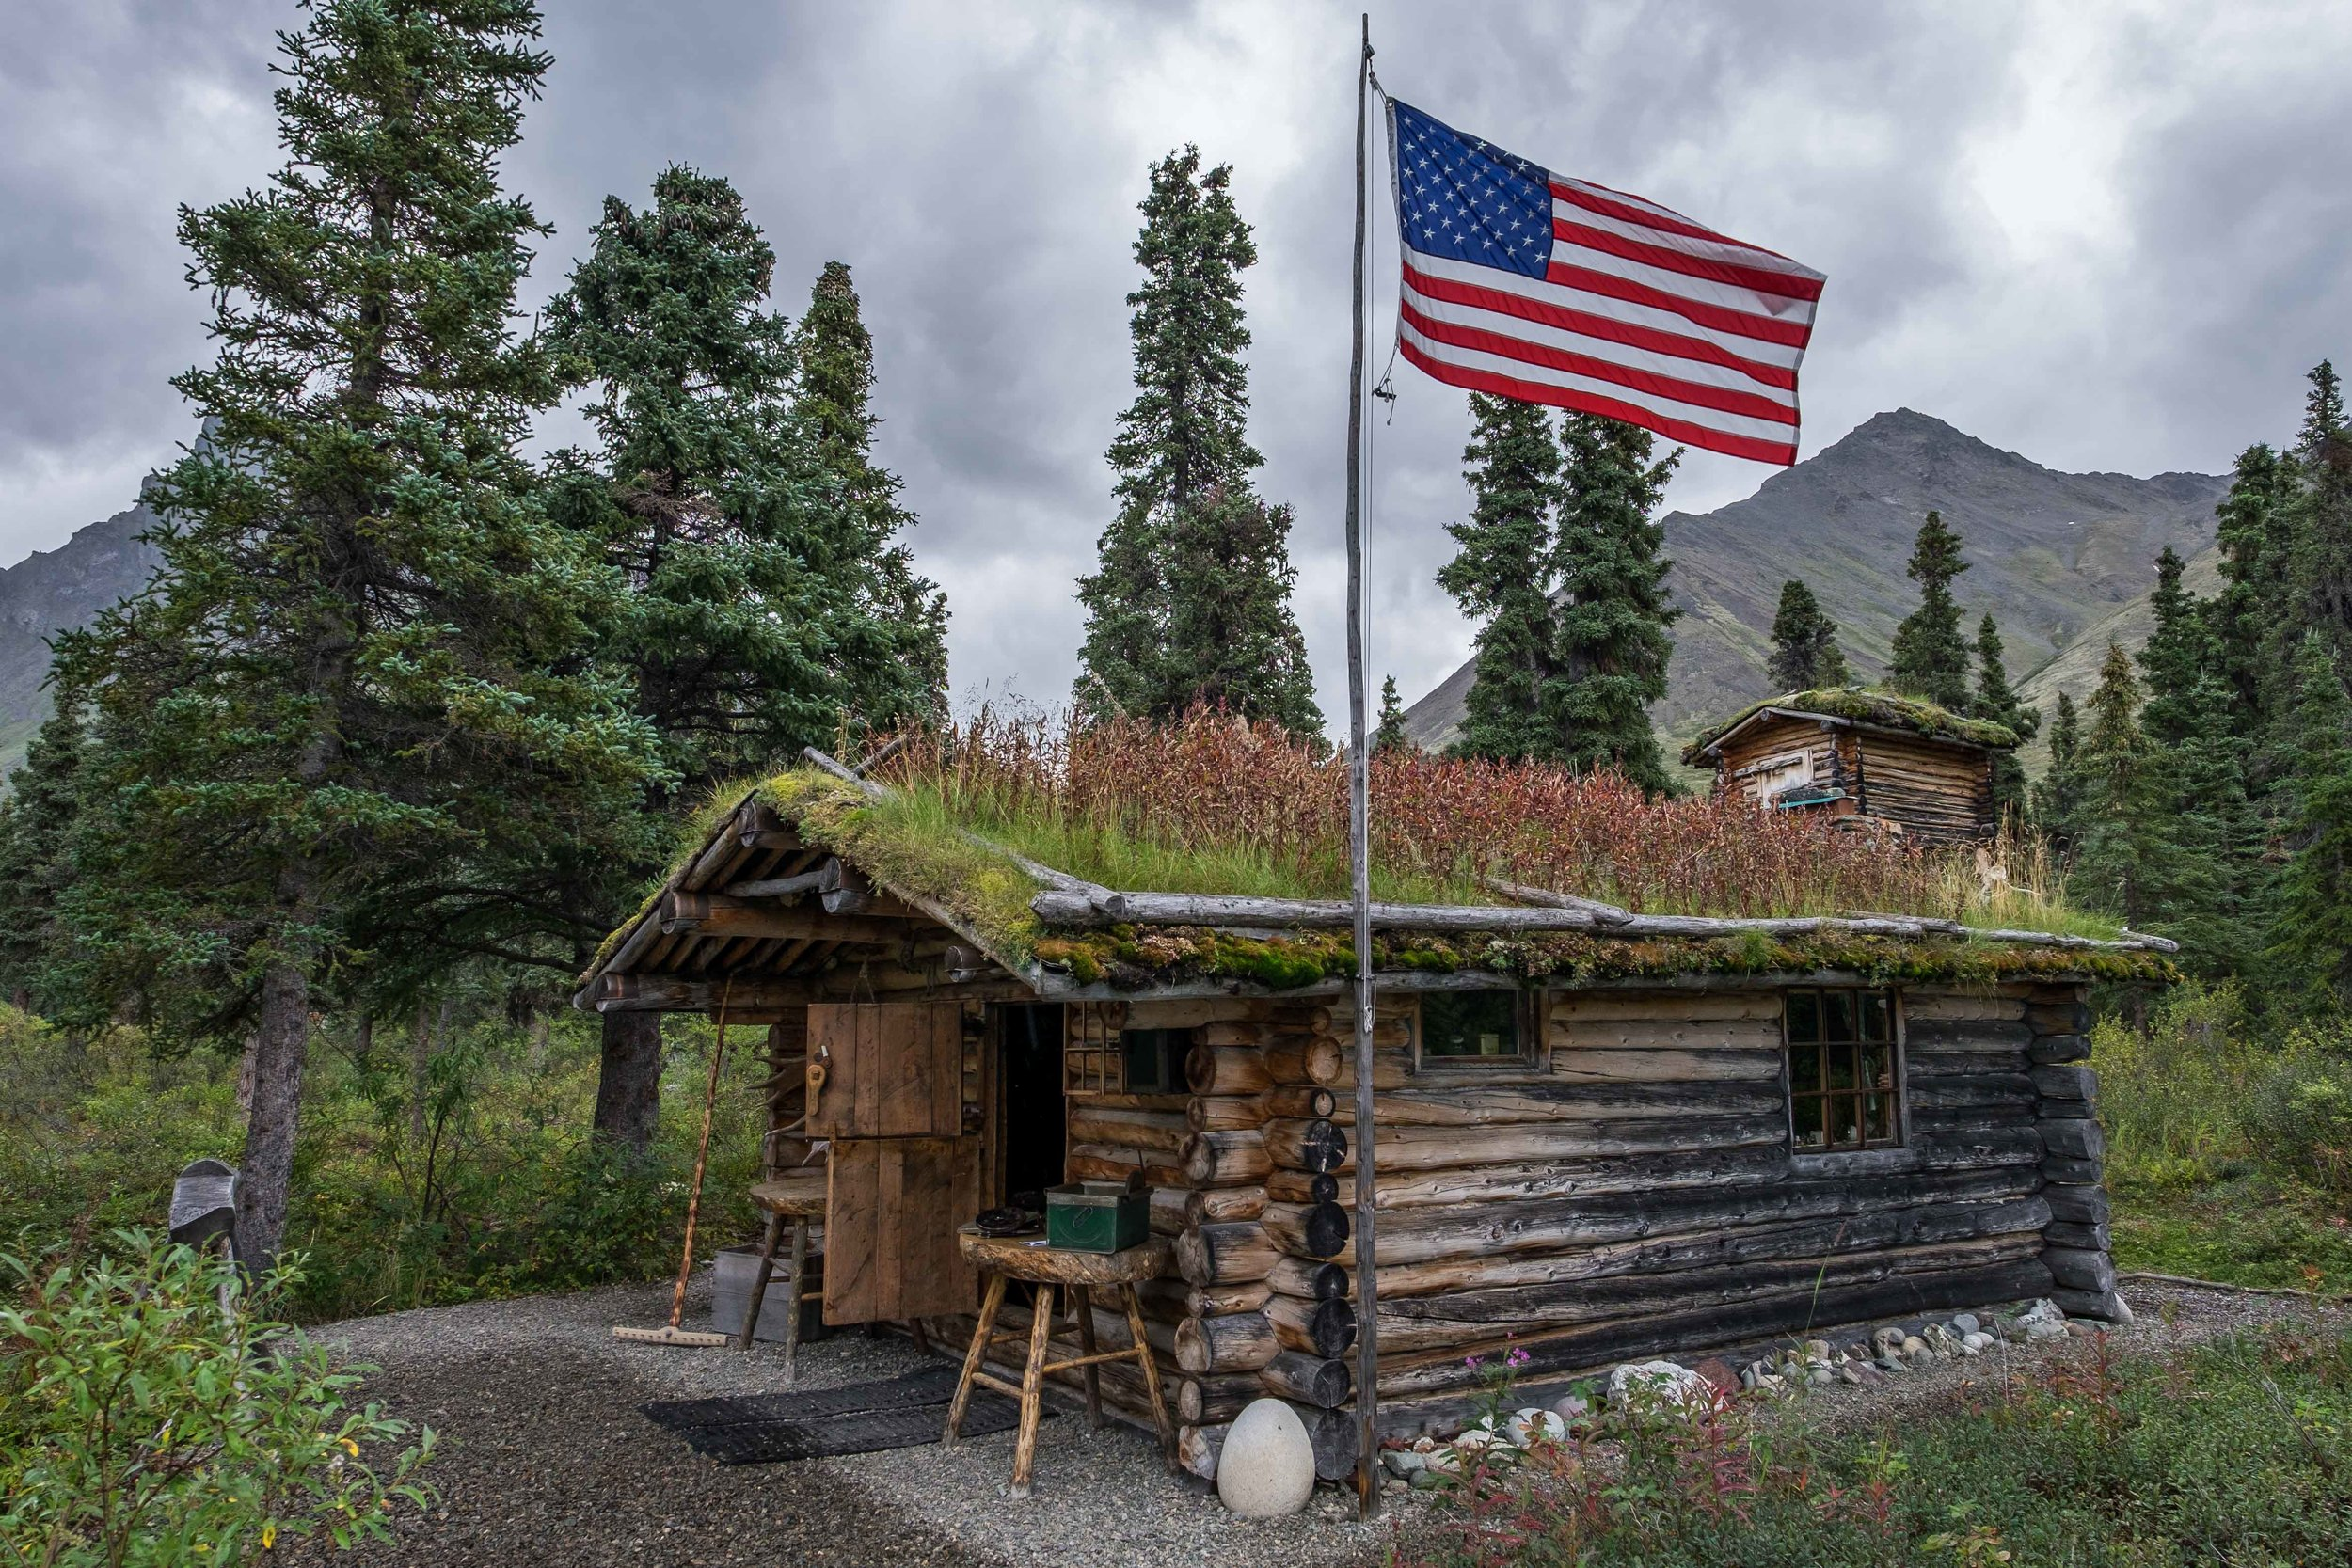 But first, as stop at Upper Twin lake to visit Richard Proenneke's cabin. Proenneke was famous outdoorsman who made his life at this beautiful lake. His cabin is a great example of his excellent craftmanship.